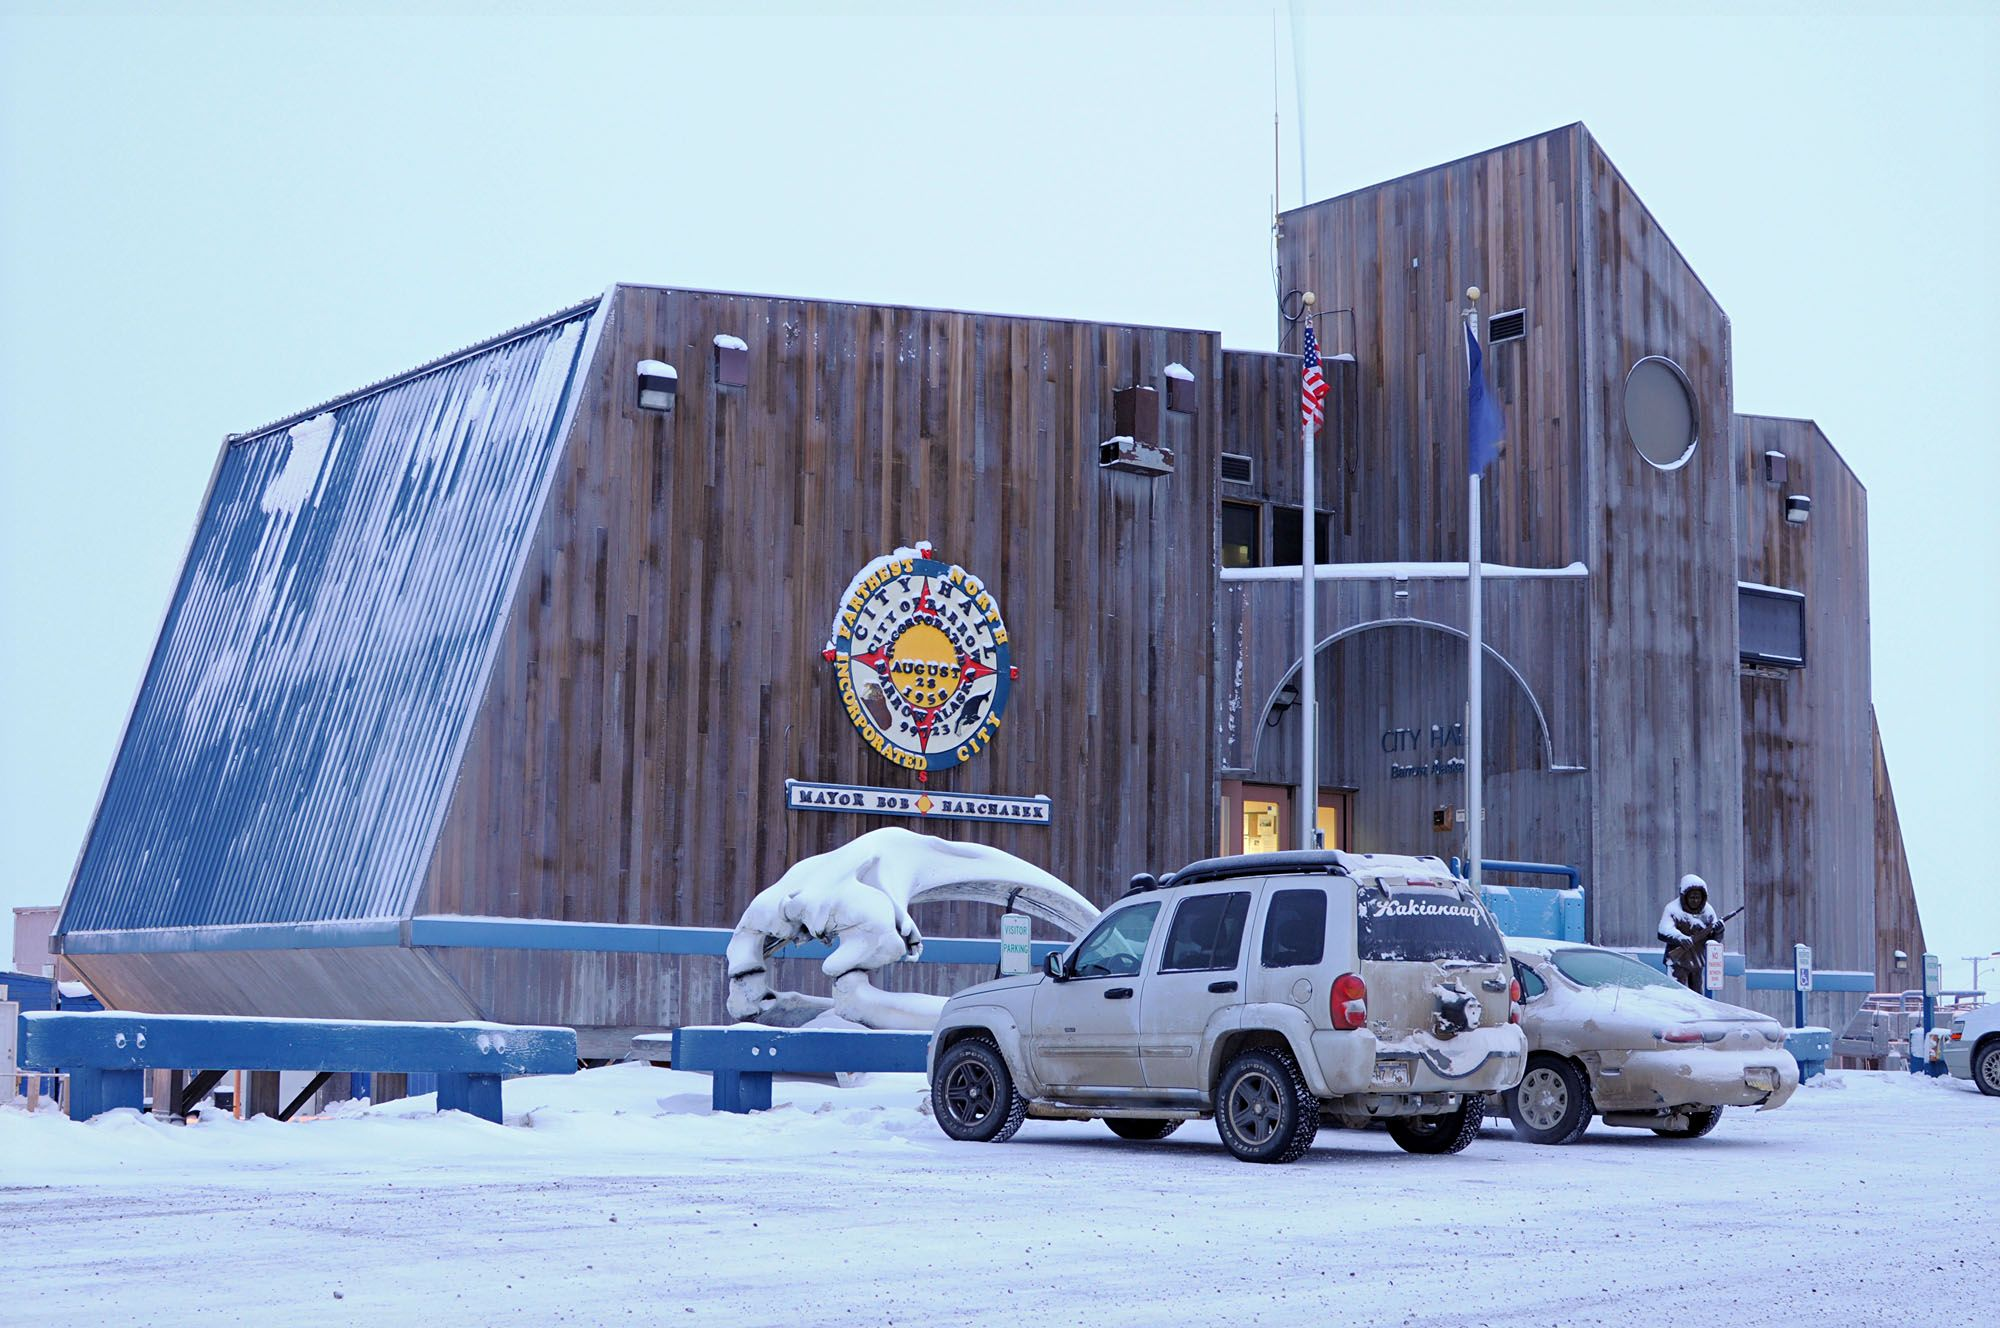 Barrow S City Hall Building Is The Largest In Alaska North Slope Borough